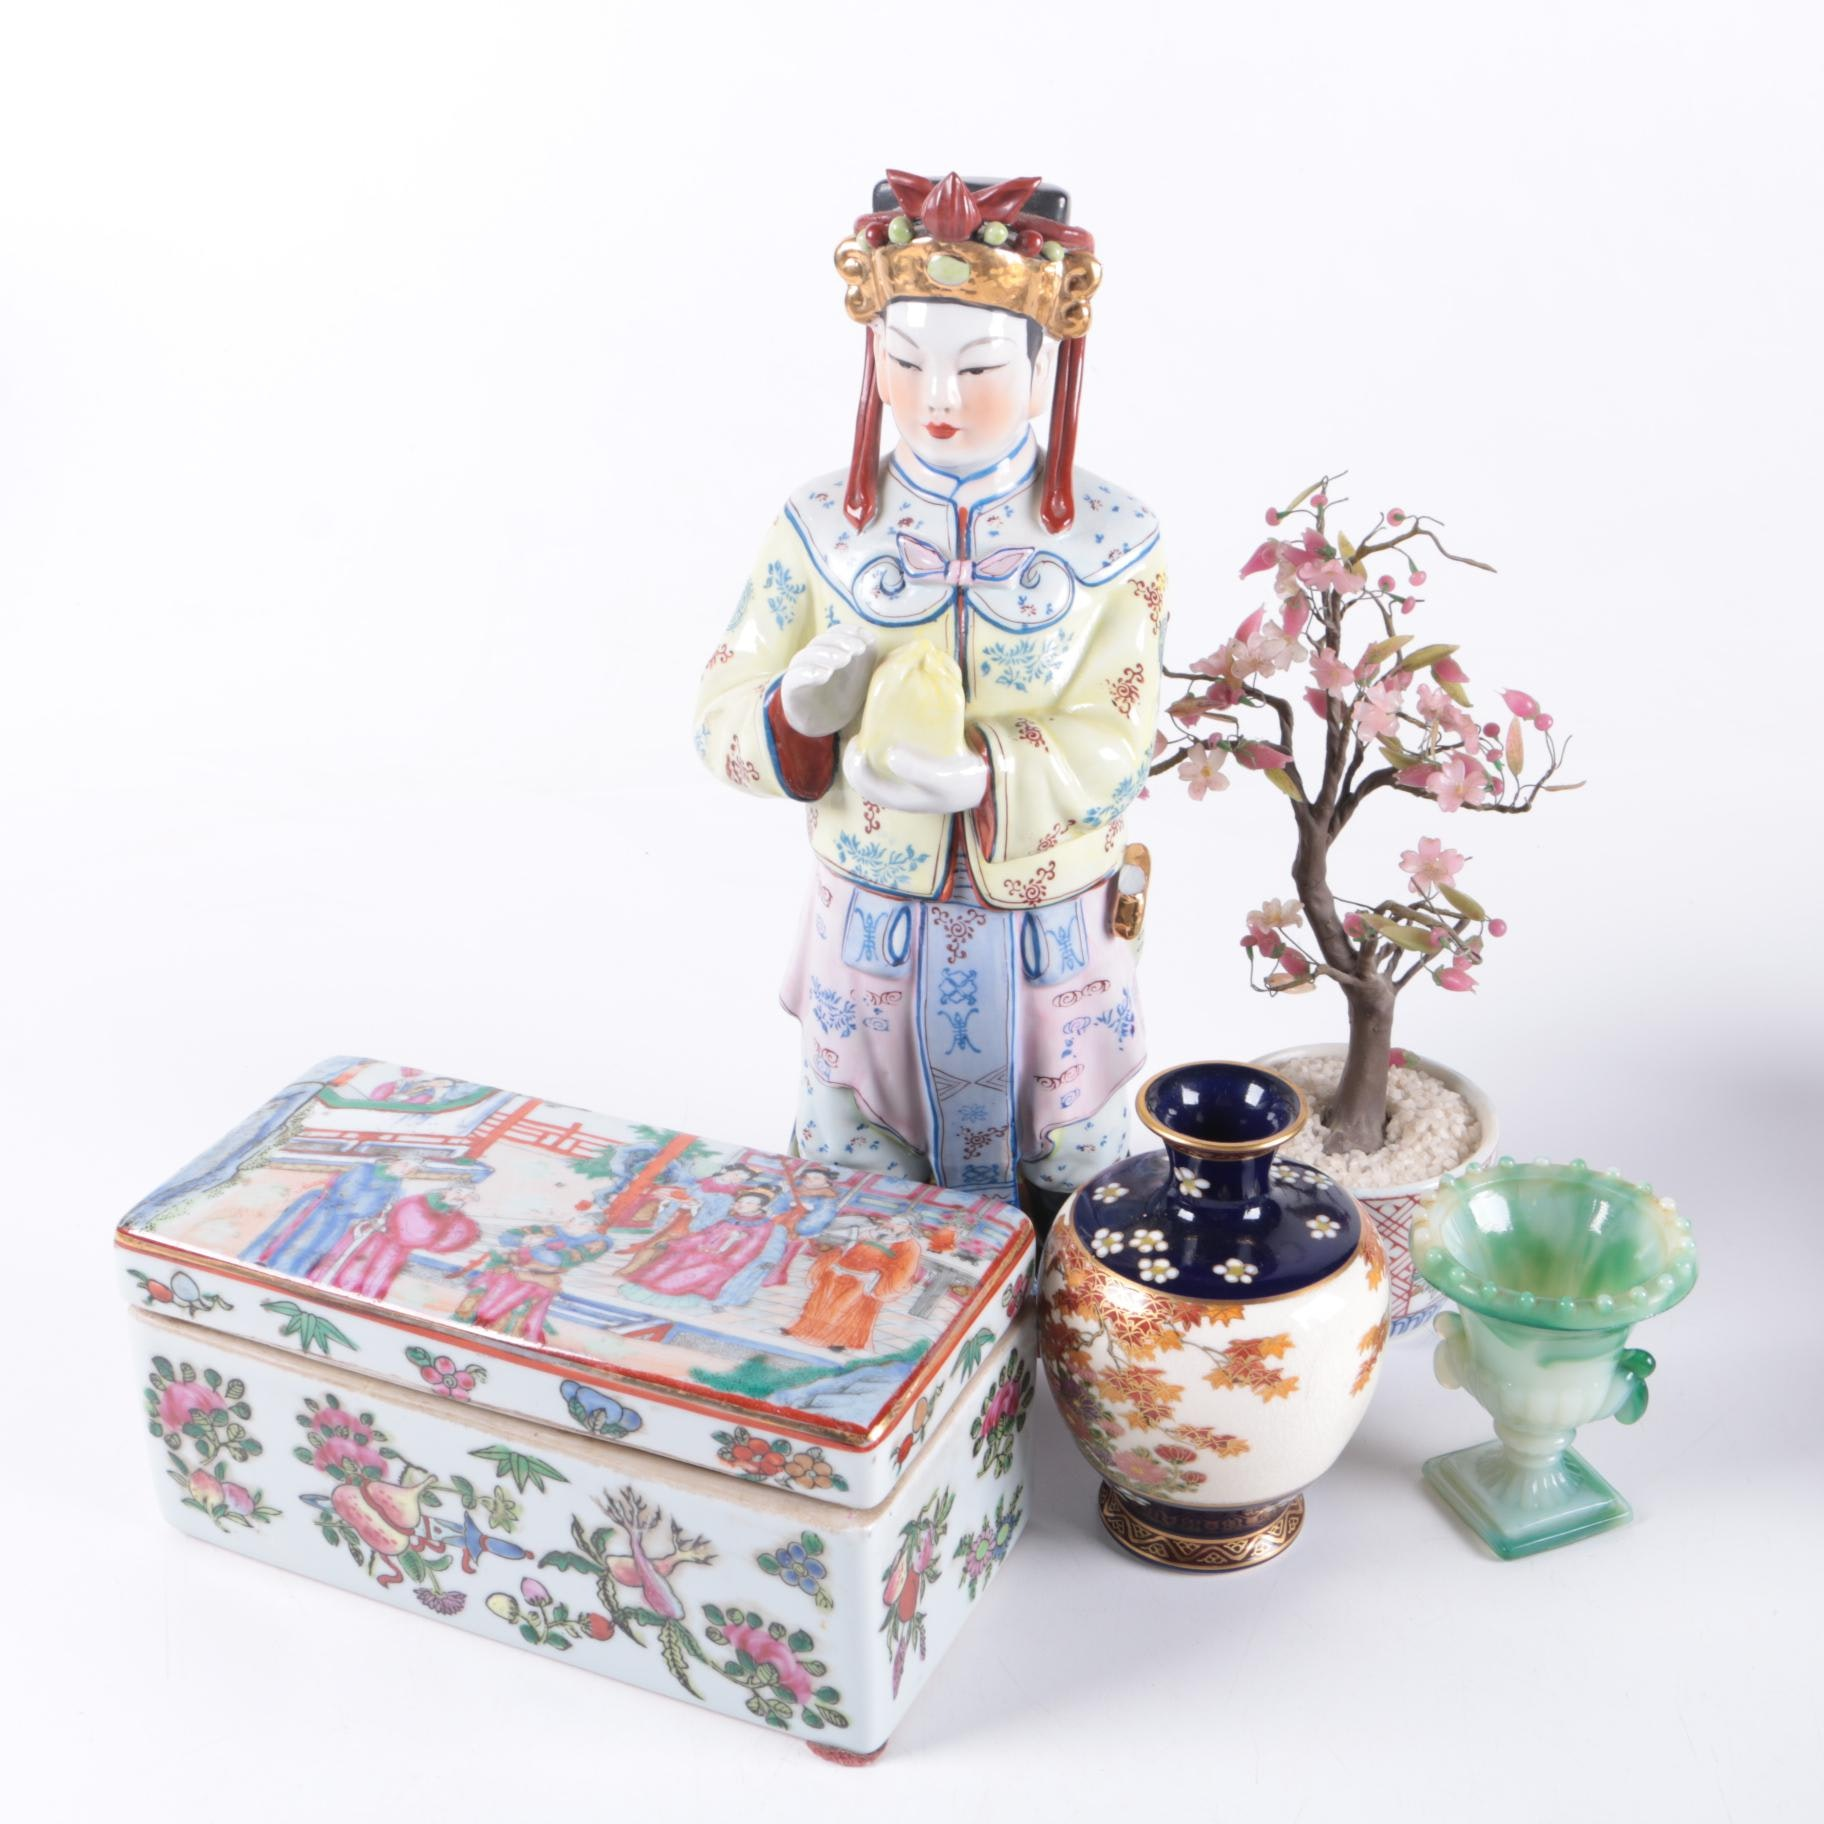 Chinese Trinket Box, Figurine and Decor